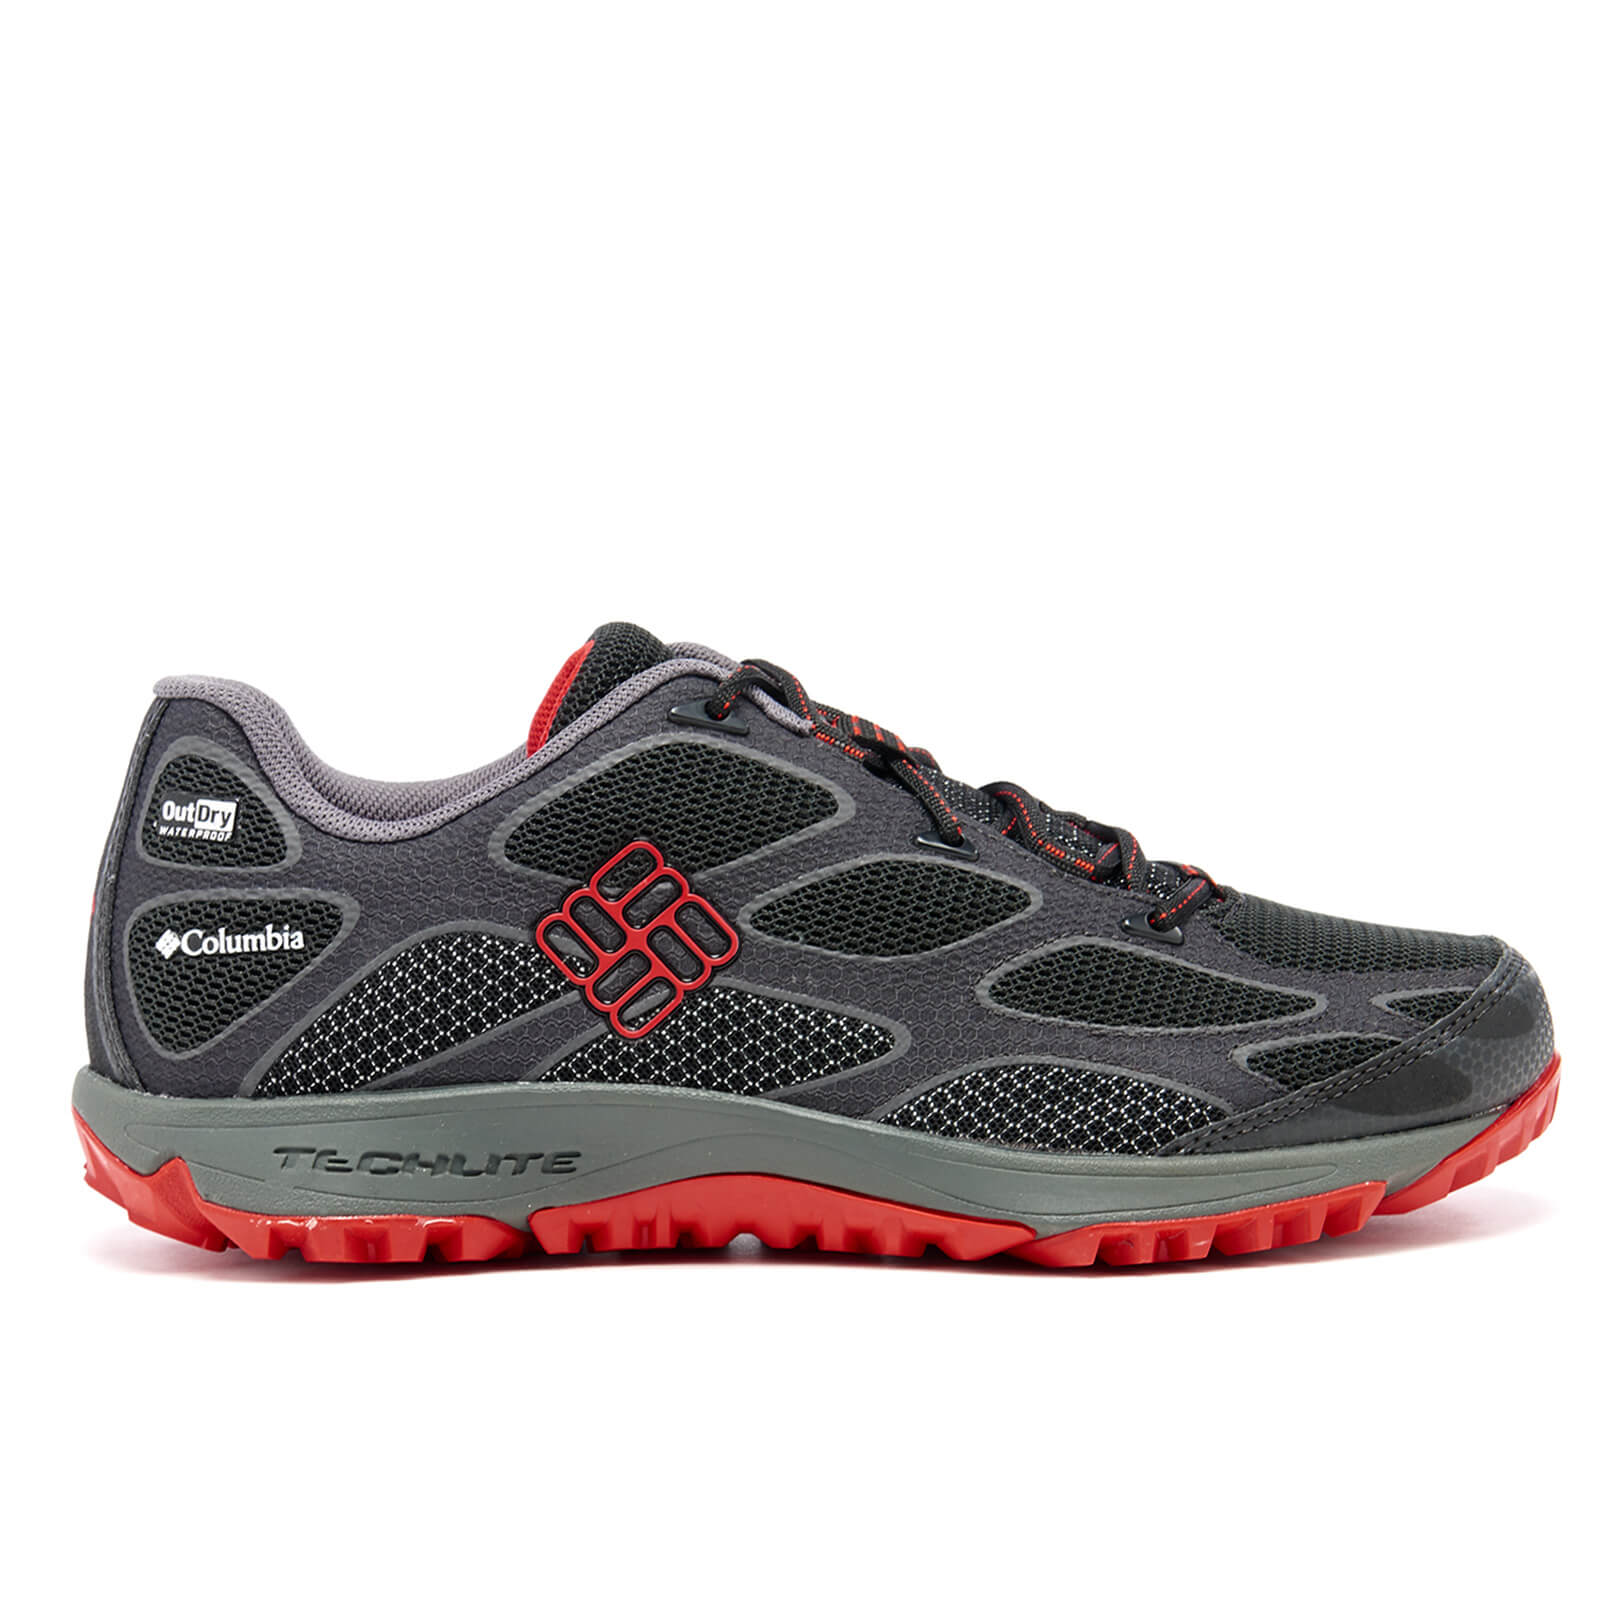 Columbia Men's Conspiracy IV Outdry Hiking Shoes BlackBright Red